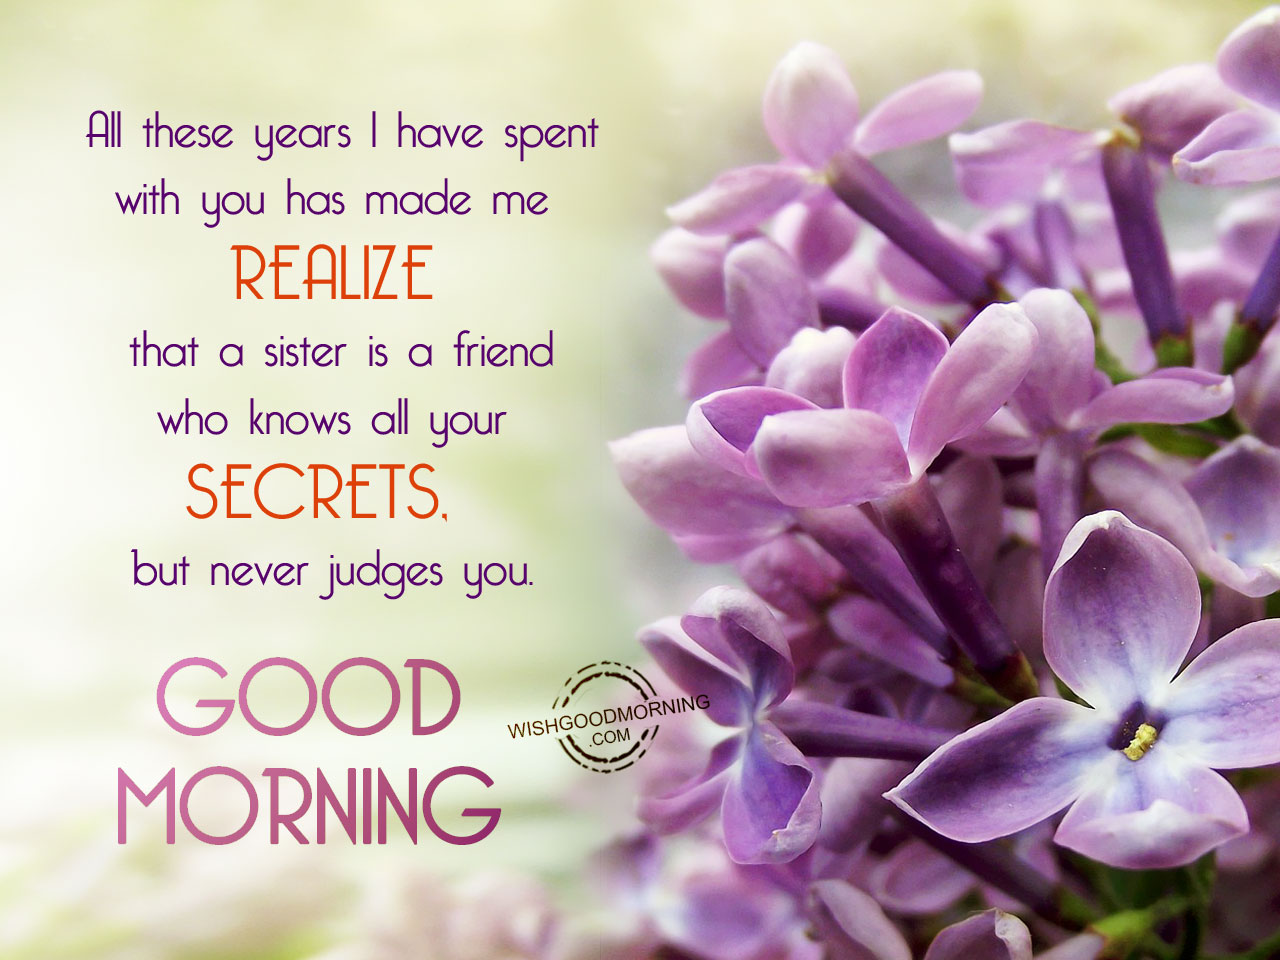 Good Morning Sisters Image : Good morning wishes for sister pictures